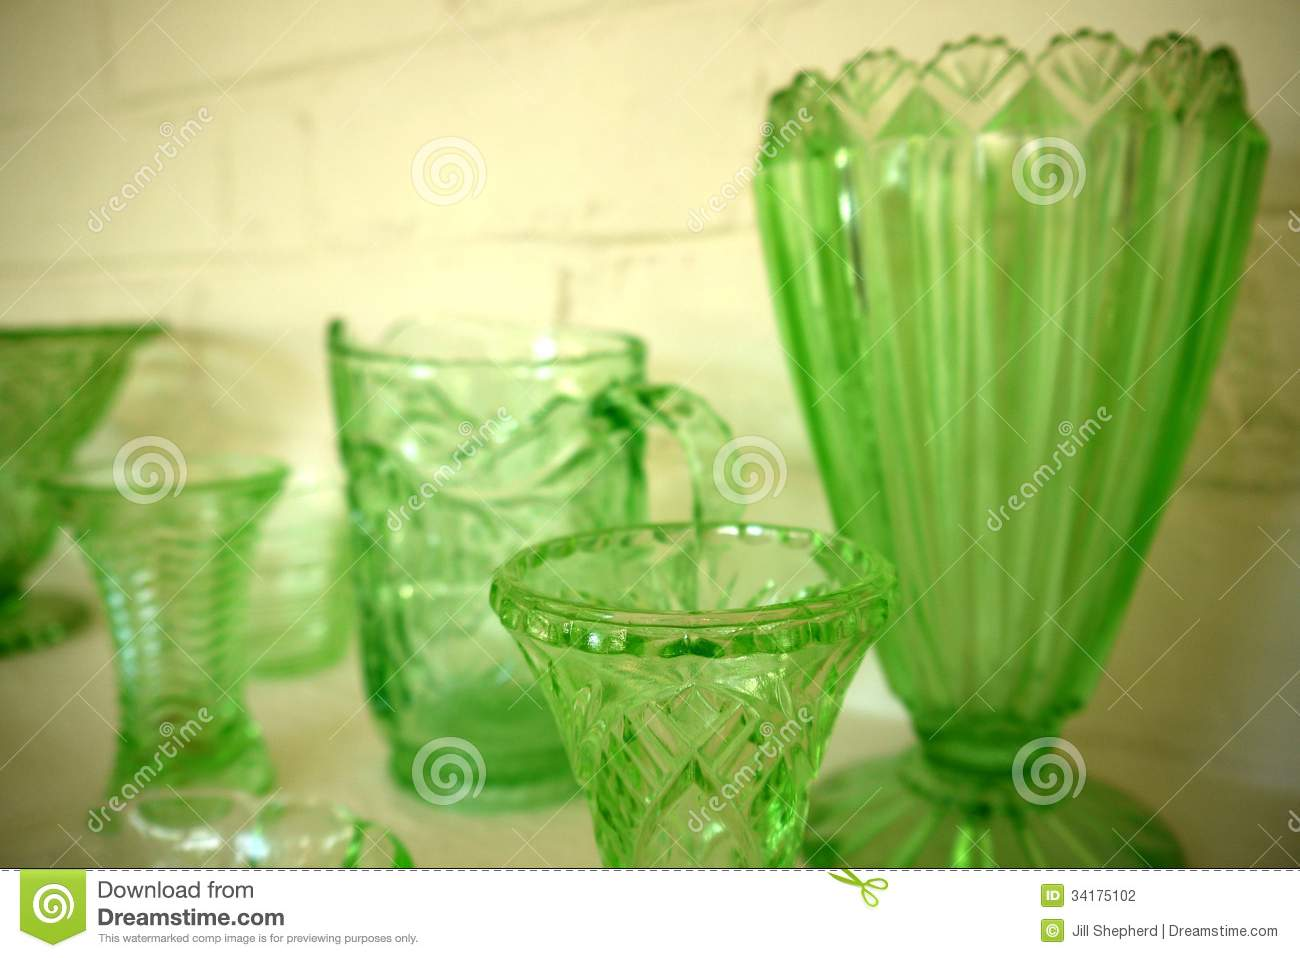 venetian vases italy vase glass south image download high resolution green